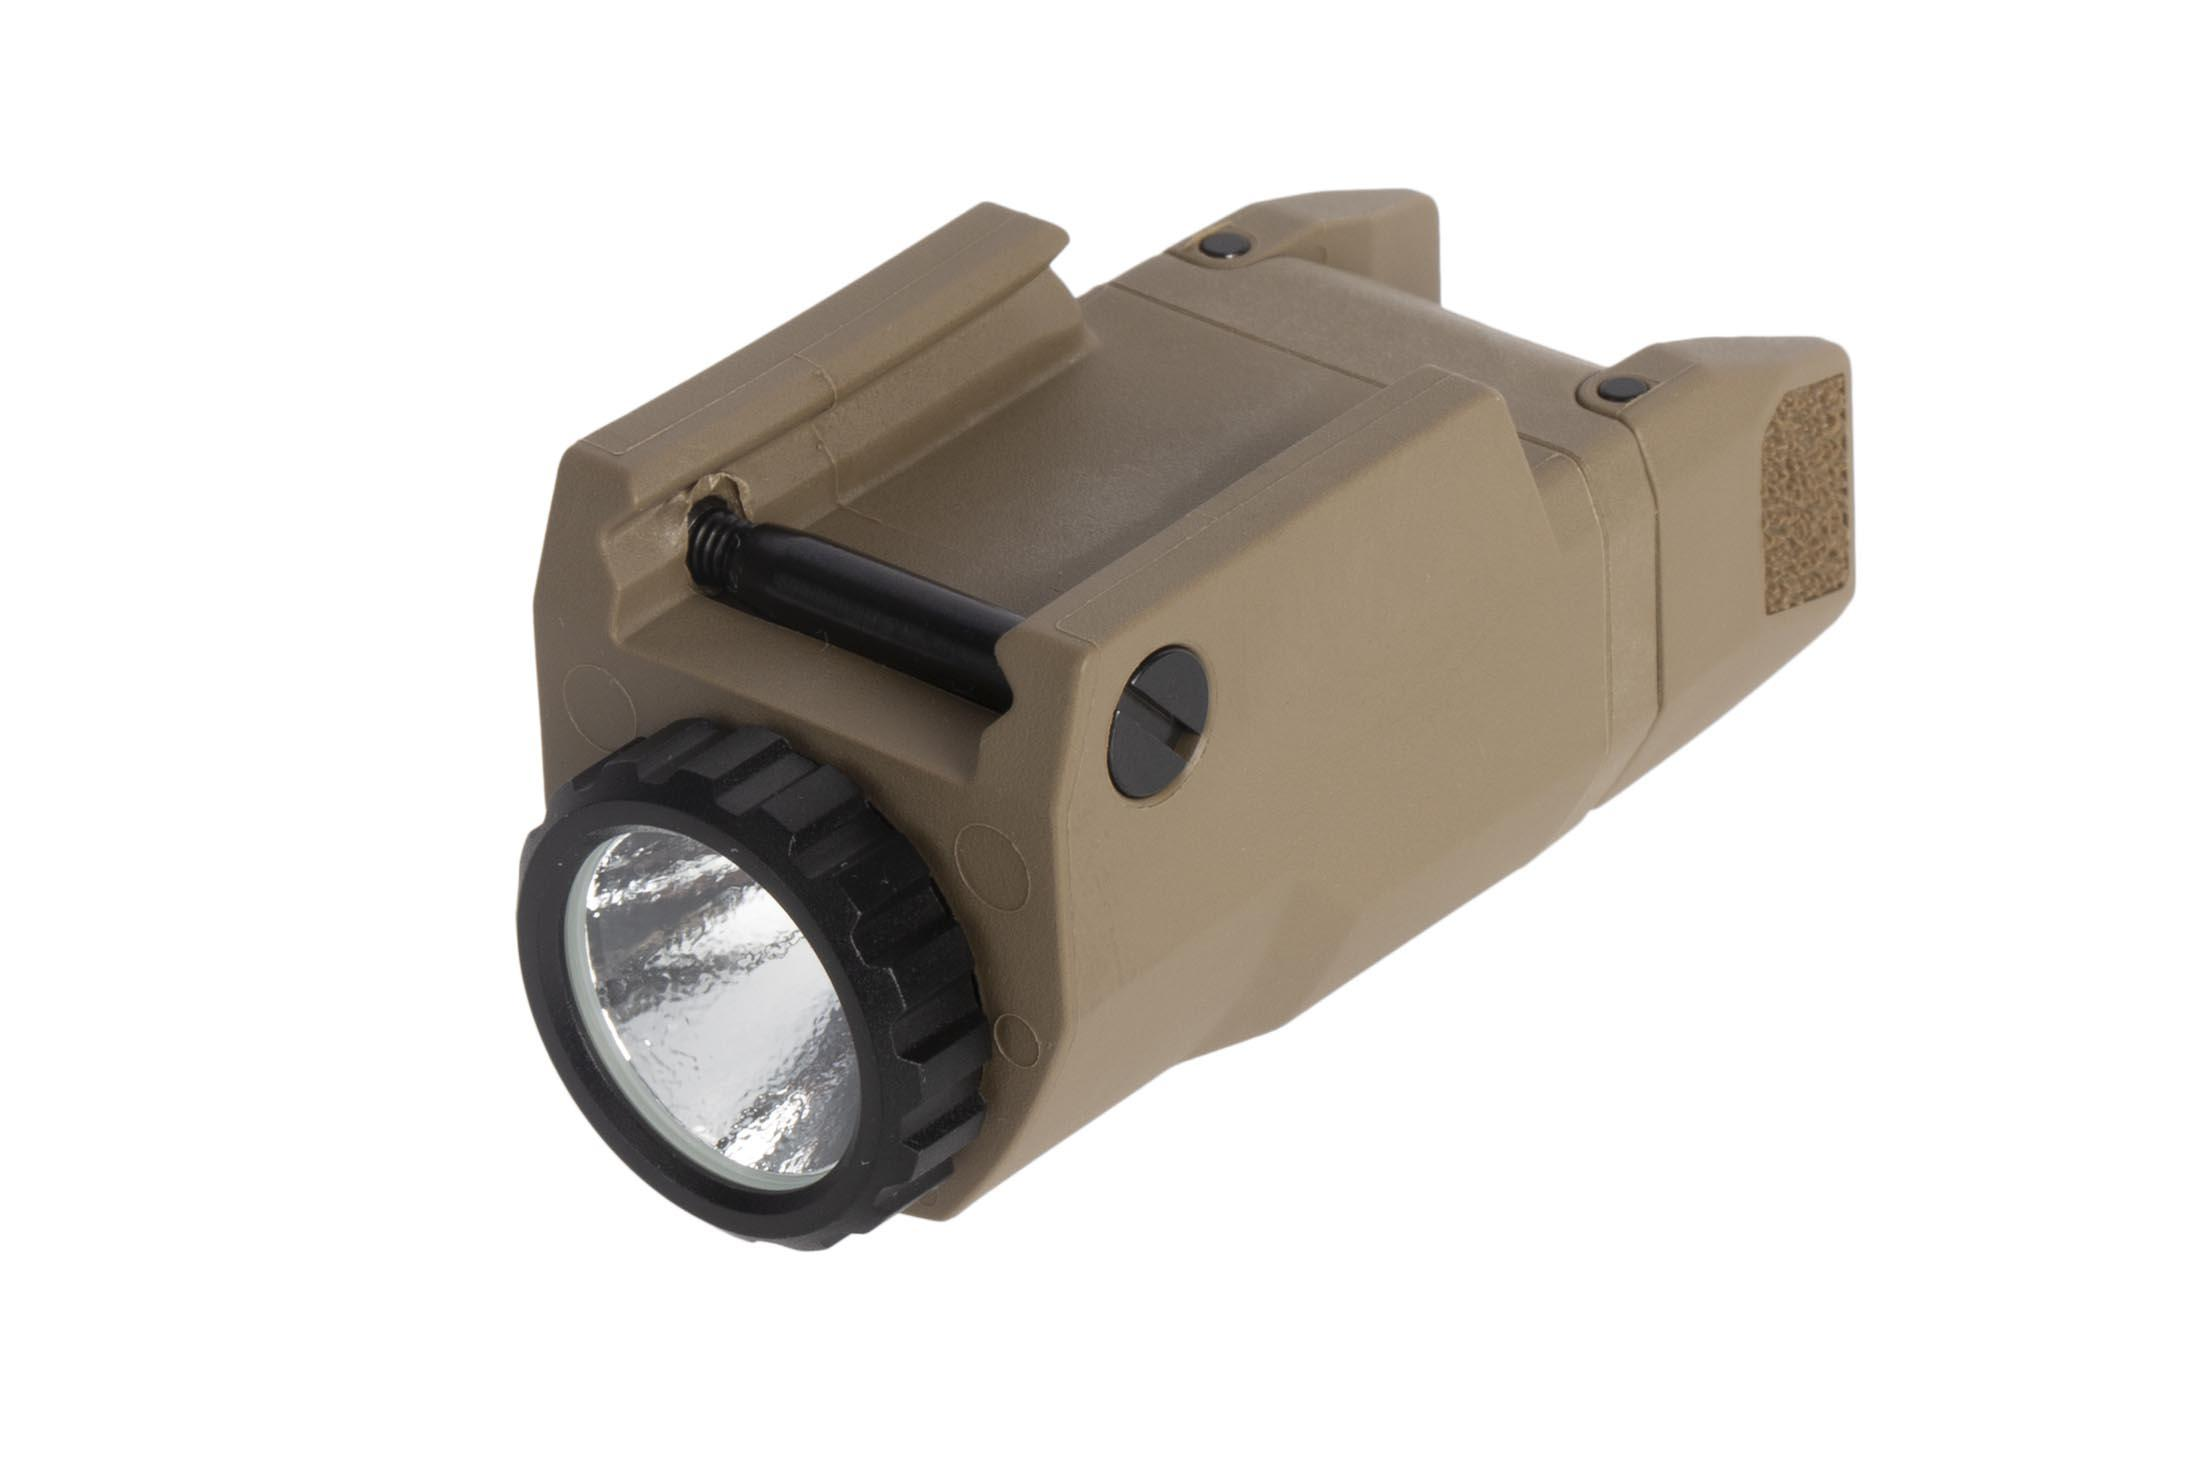 Inforce APLc weaponlight for Glock handguns with FDE body puts out 200 lumens of bright white light ideal for CQC